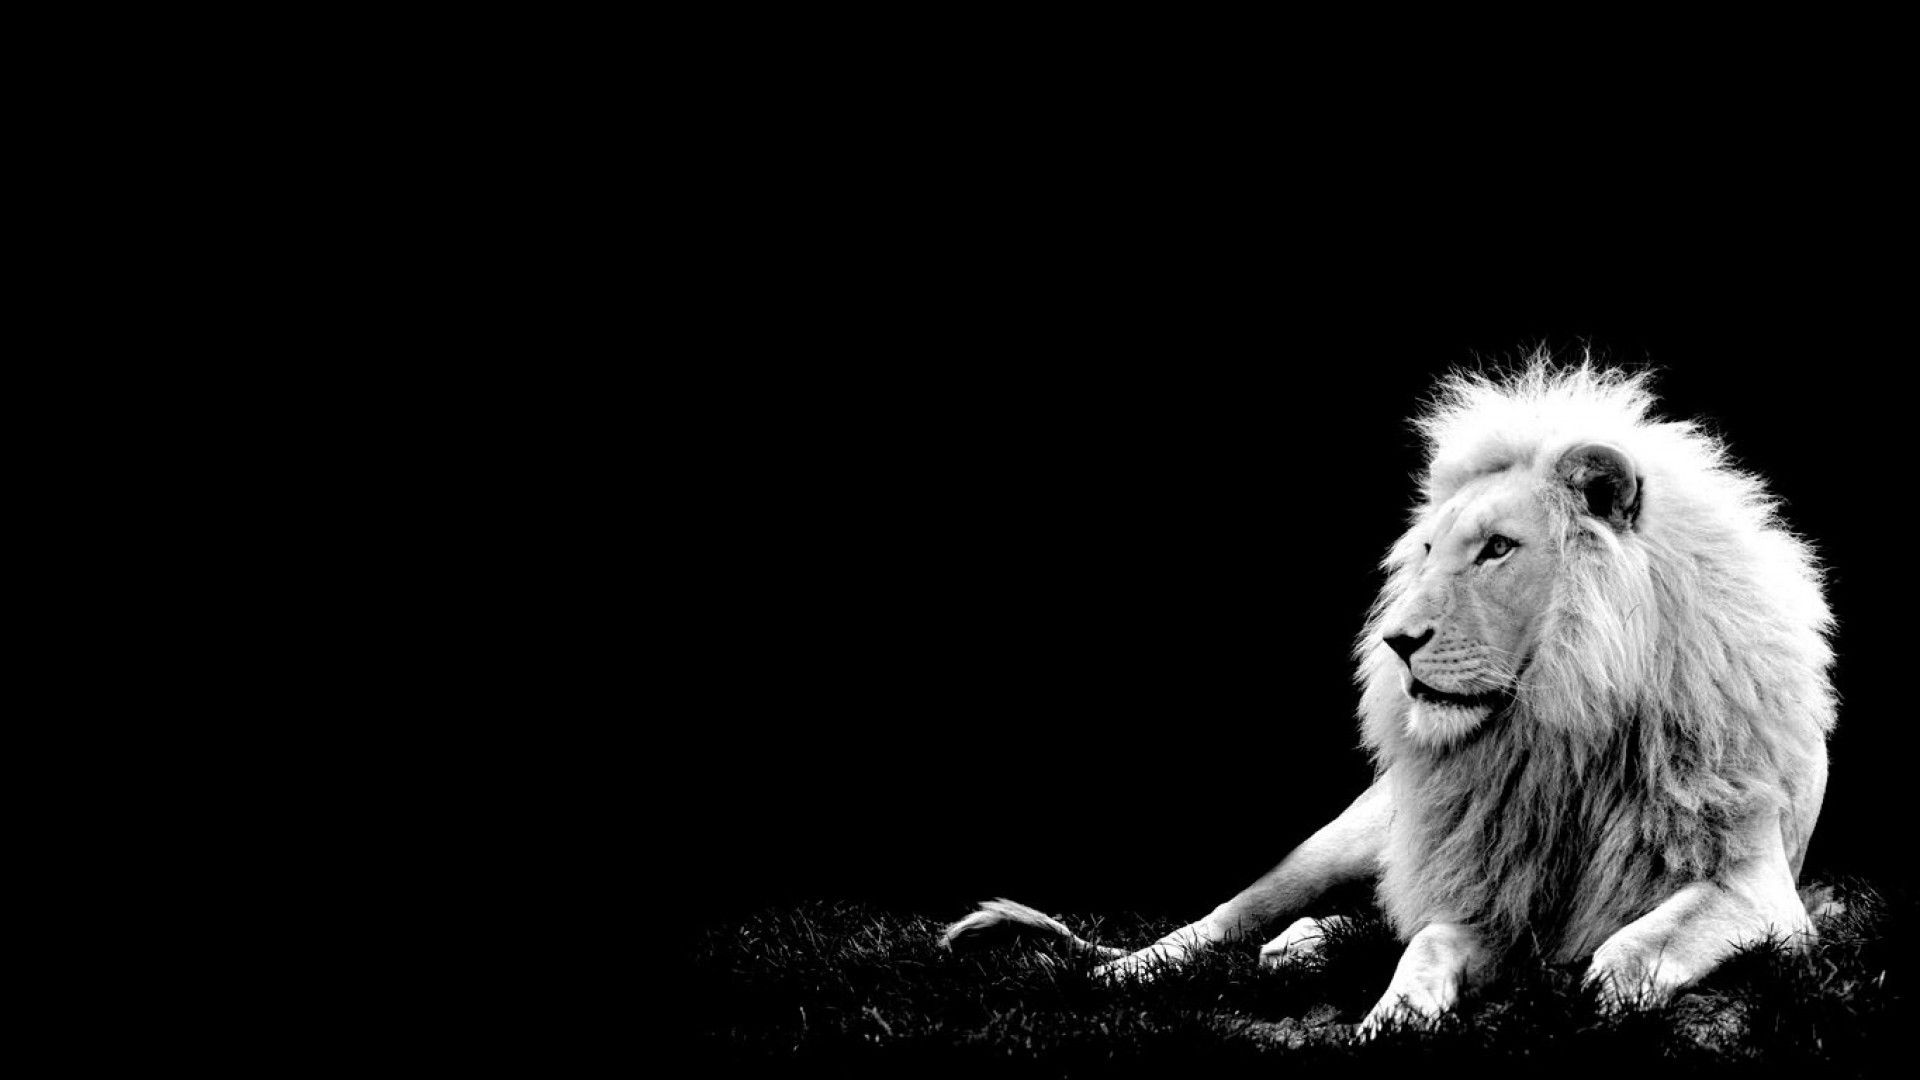 Best 25 Lion Hd Wallpaper Ideas On Pinterest: Wallpapers For > Lion Wallpaper Hd 1080p